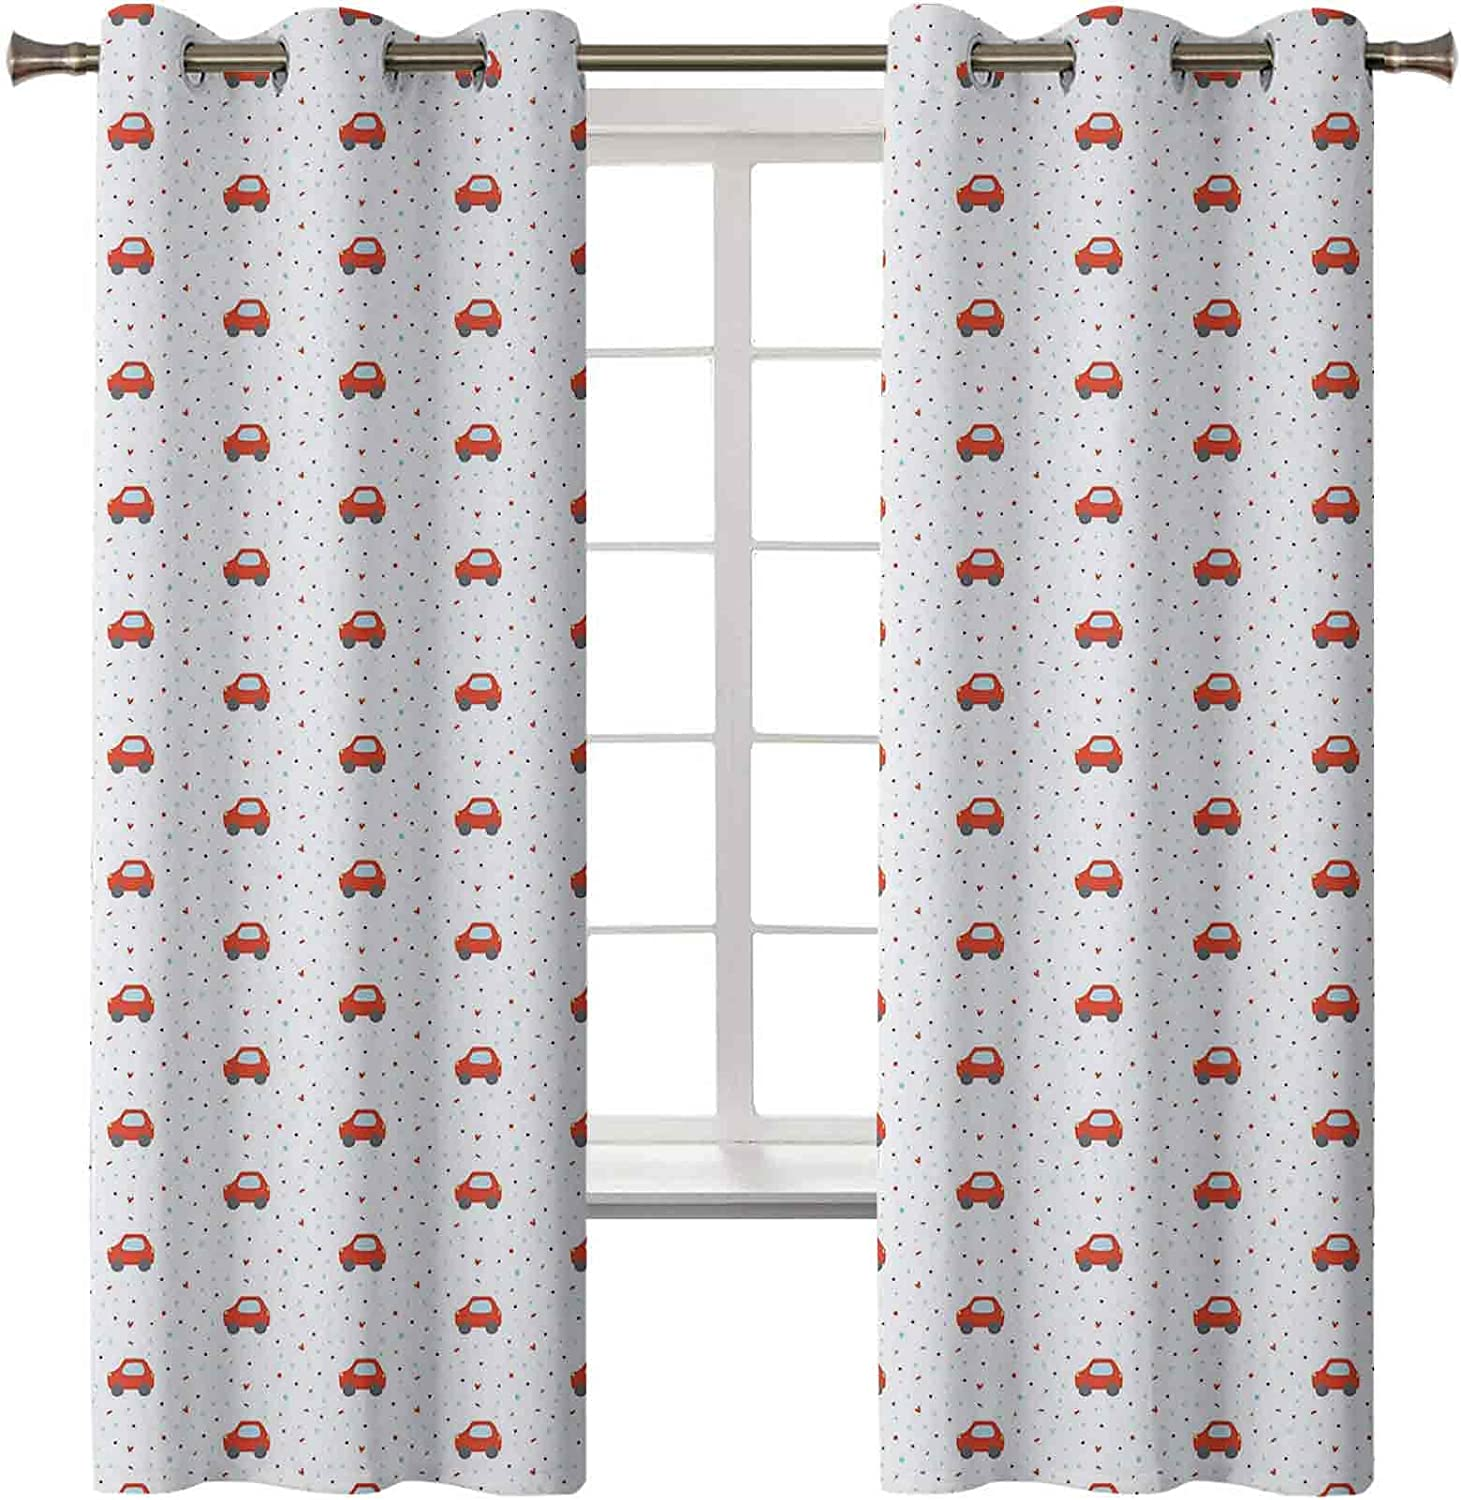 Classic Cartoon Black Out Curtains Continuous Nursery Themed Pattern 2021 spring and summer new wi